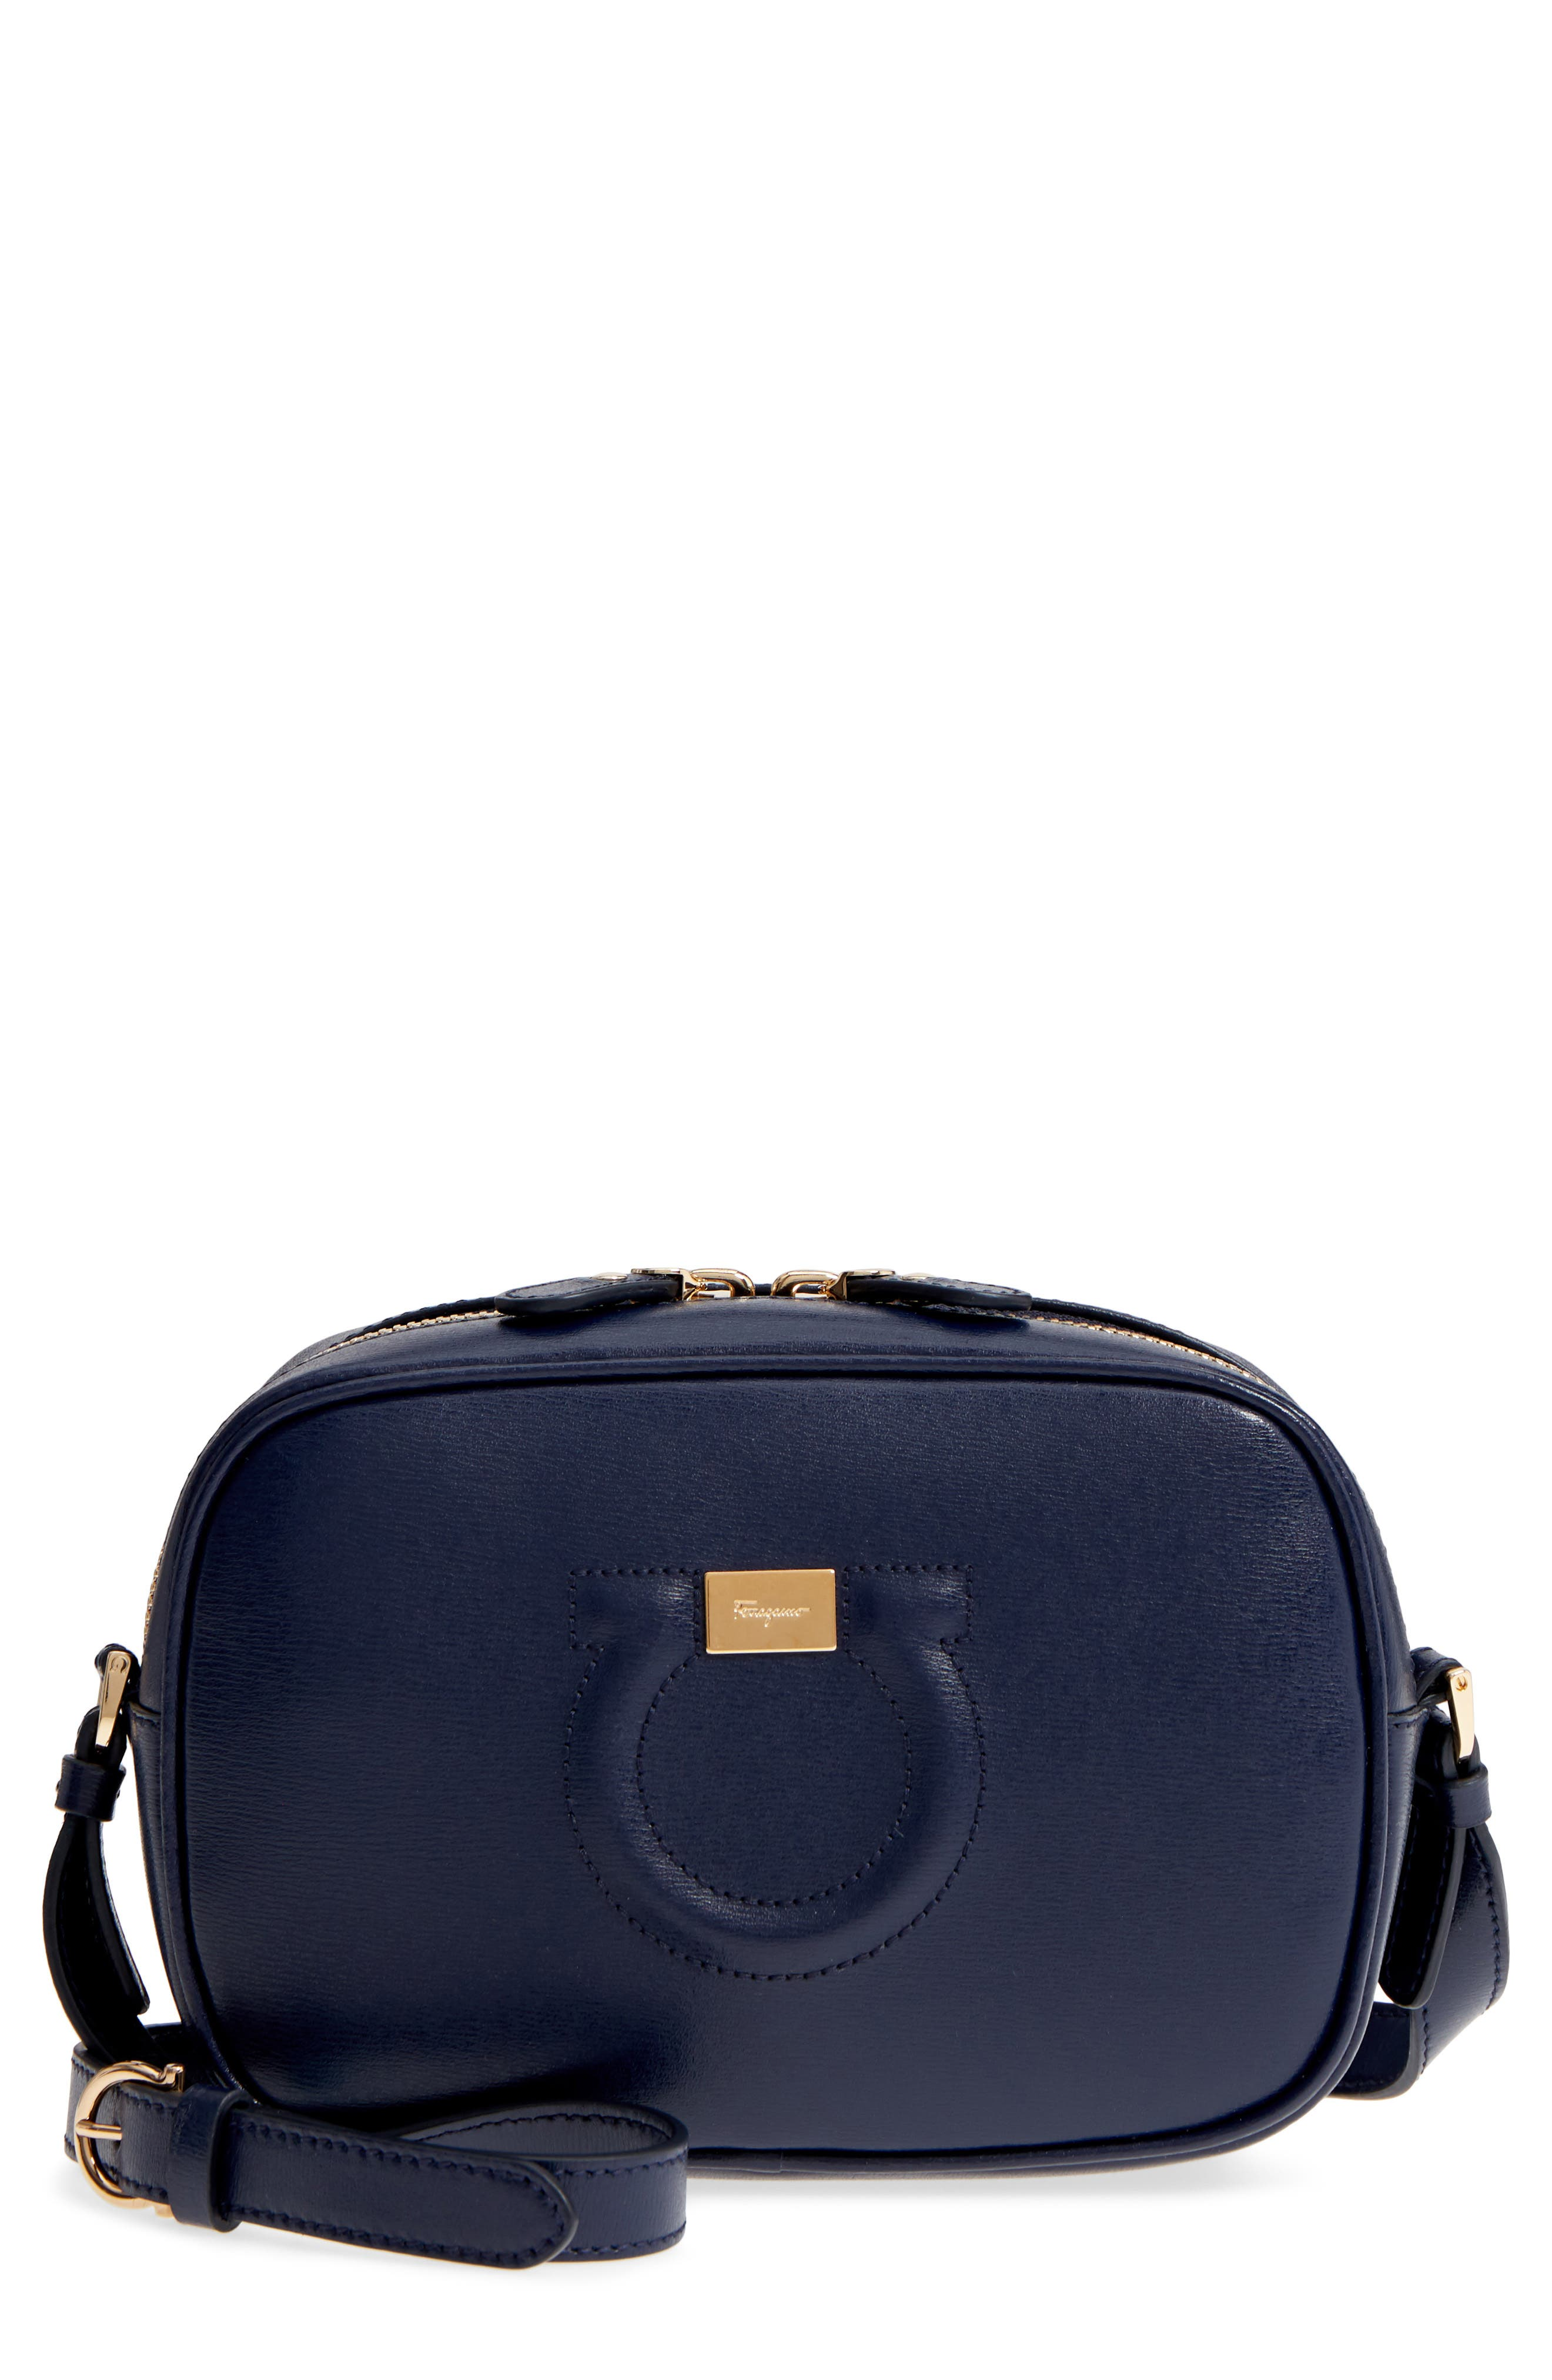 Gancio Metallic Leather Camera Bag,                         Main,                         color, NAVY